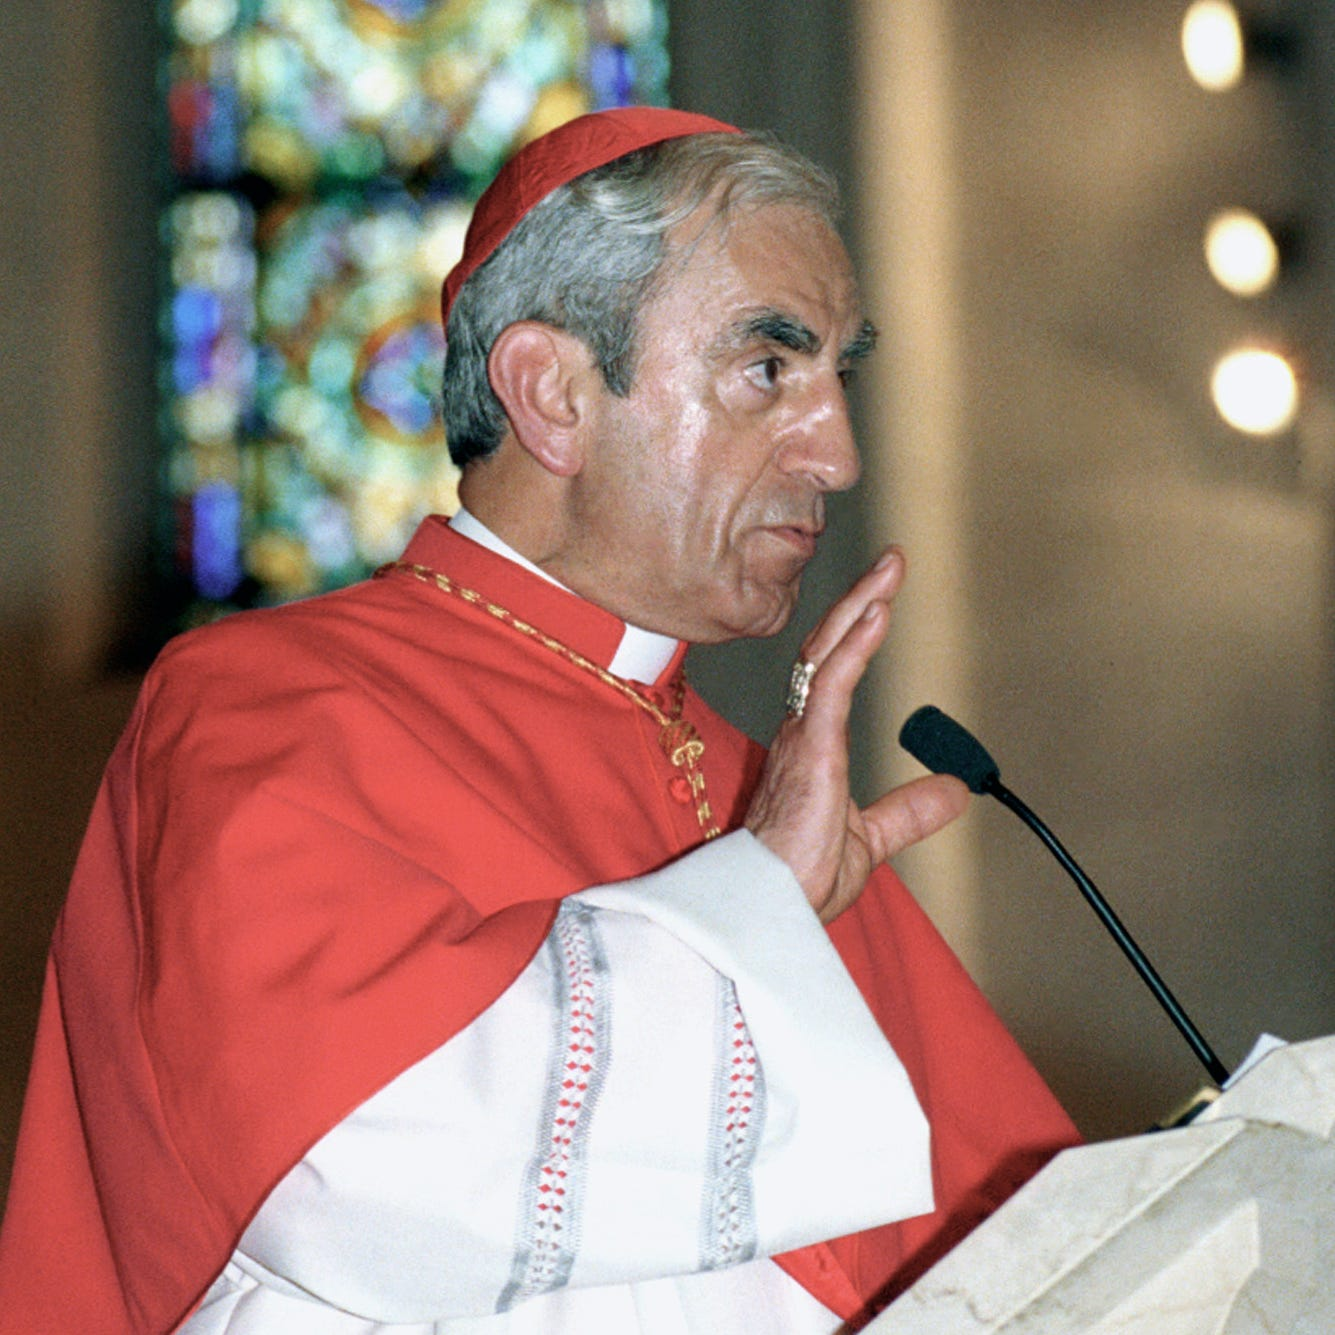 'It ruined me entirely': Woman accuses former Pa. cardinal of abuse in new lawsuit